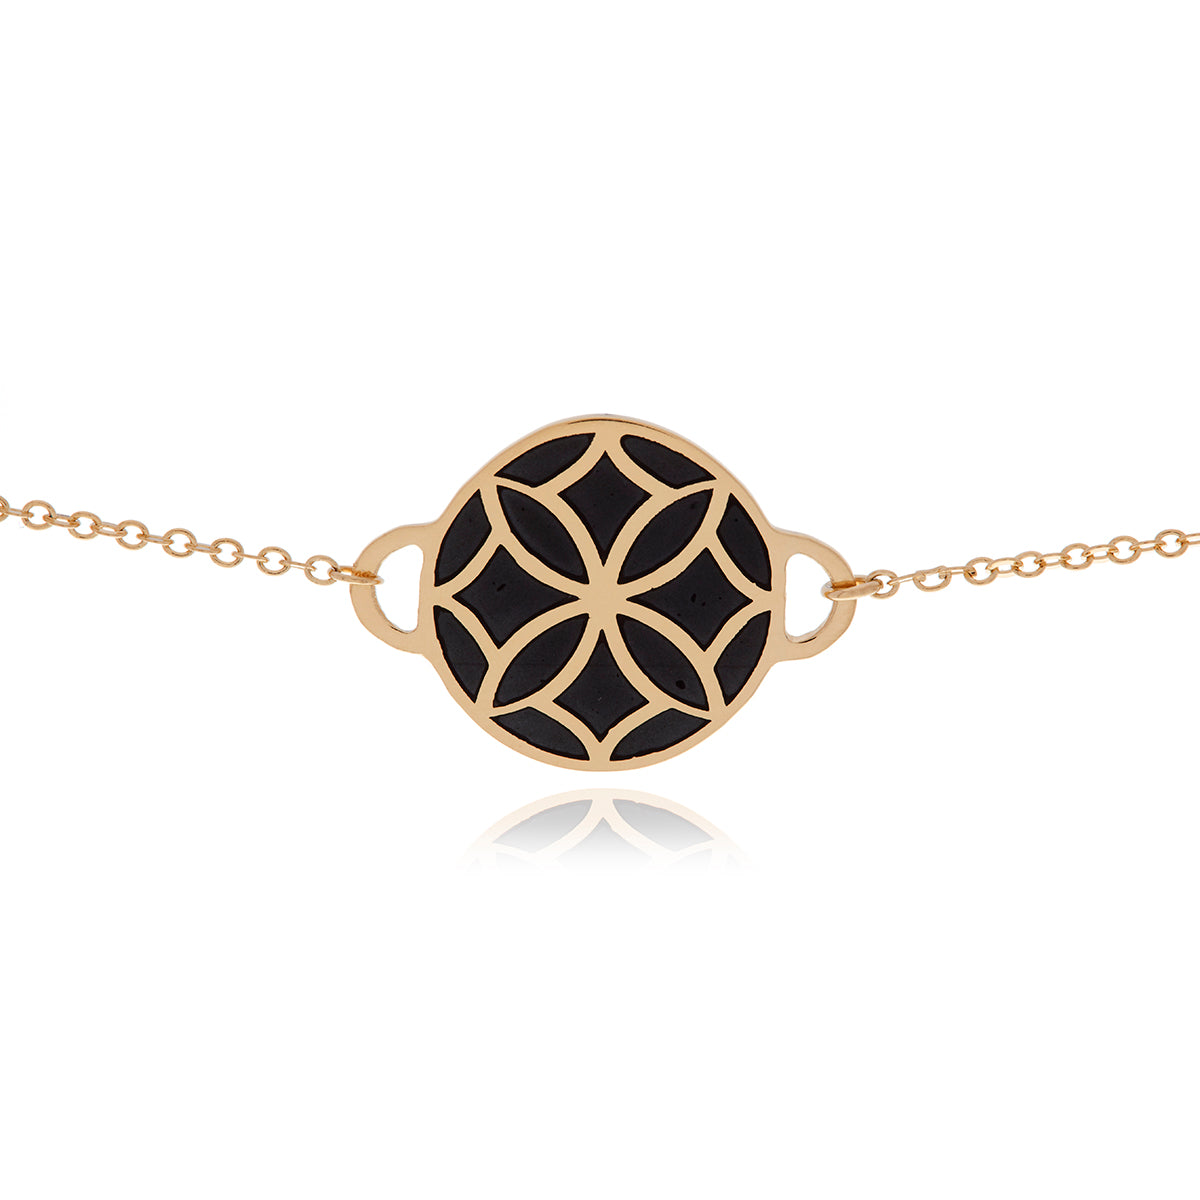 Signature Flower Gold Black Necklace - MCK Brands